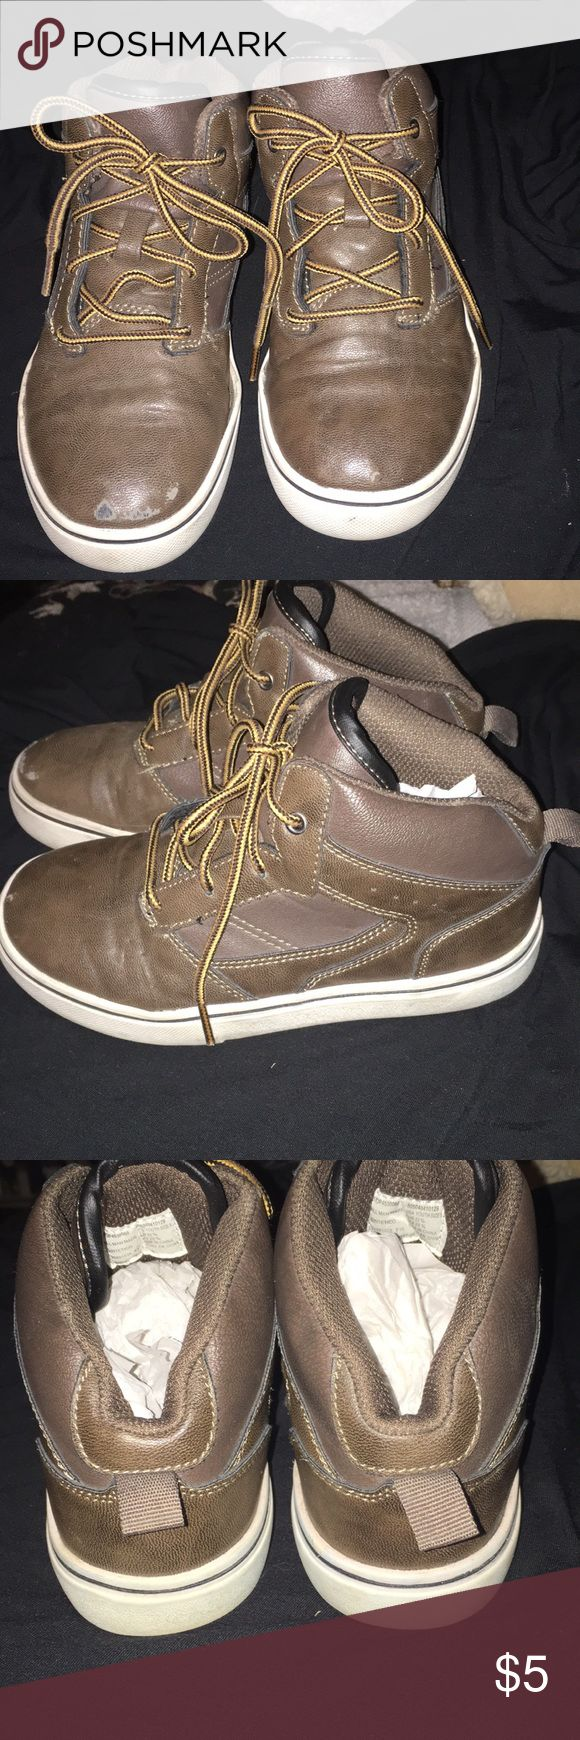 Boy OP boots. In great condition. Old navy Boys OP size one boots. I purchased these at Old Nav however it says op in boots. In excellent condition. Please ask questions. Minimal wear. Love to give bundling discount. All offers welcome. Thank you for looking. Old Navy Shoes Boots